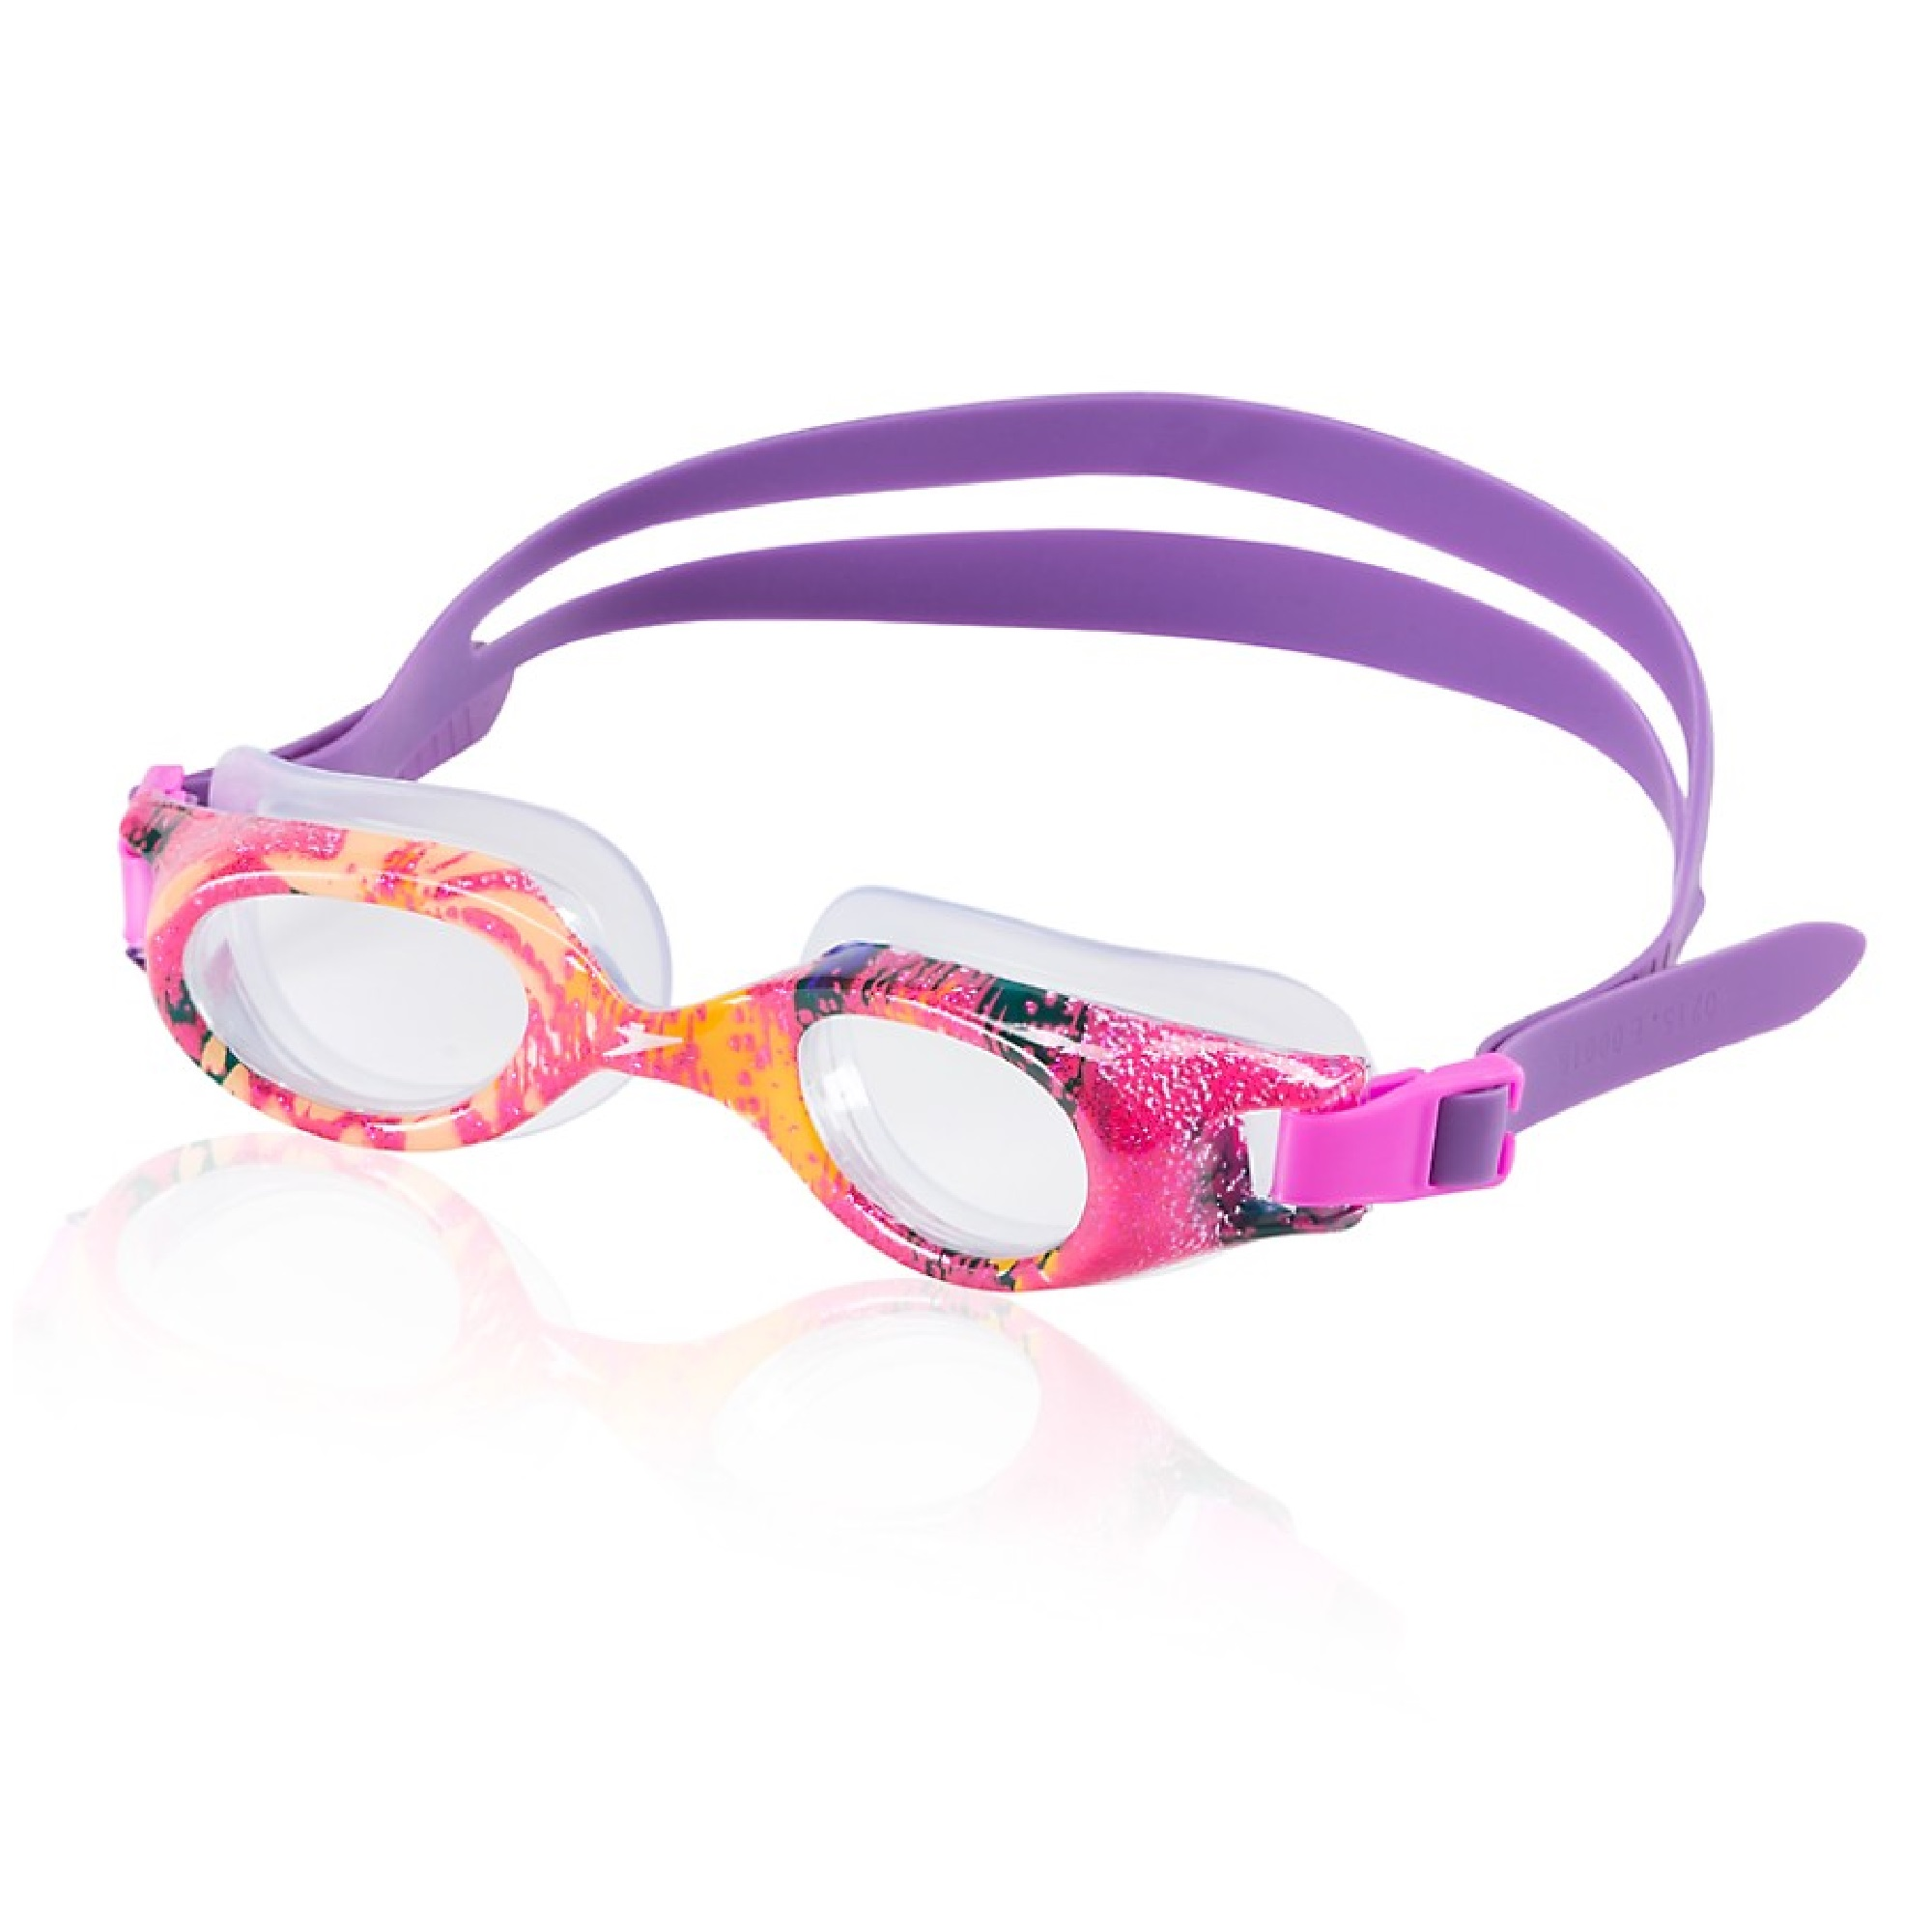 Speedo Junior Hydrospex Print Goggle Kids Recreation Goggle Pink by Speedo